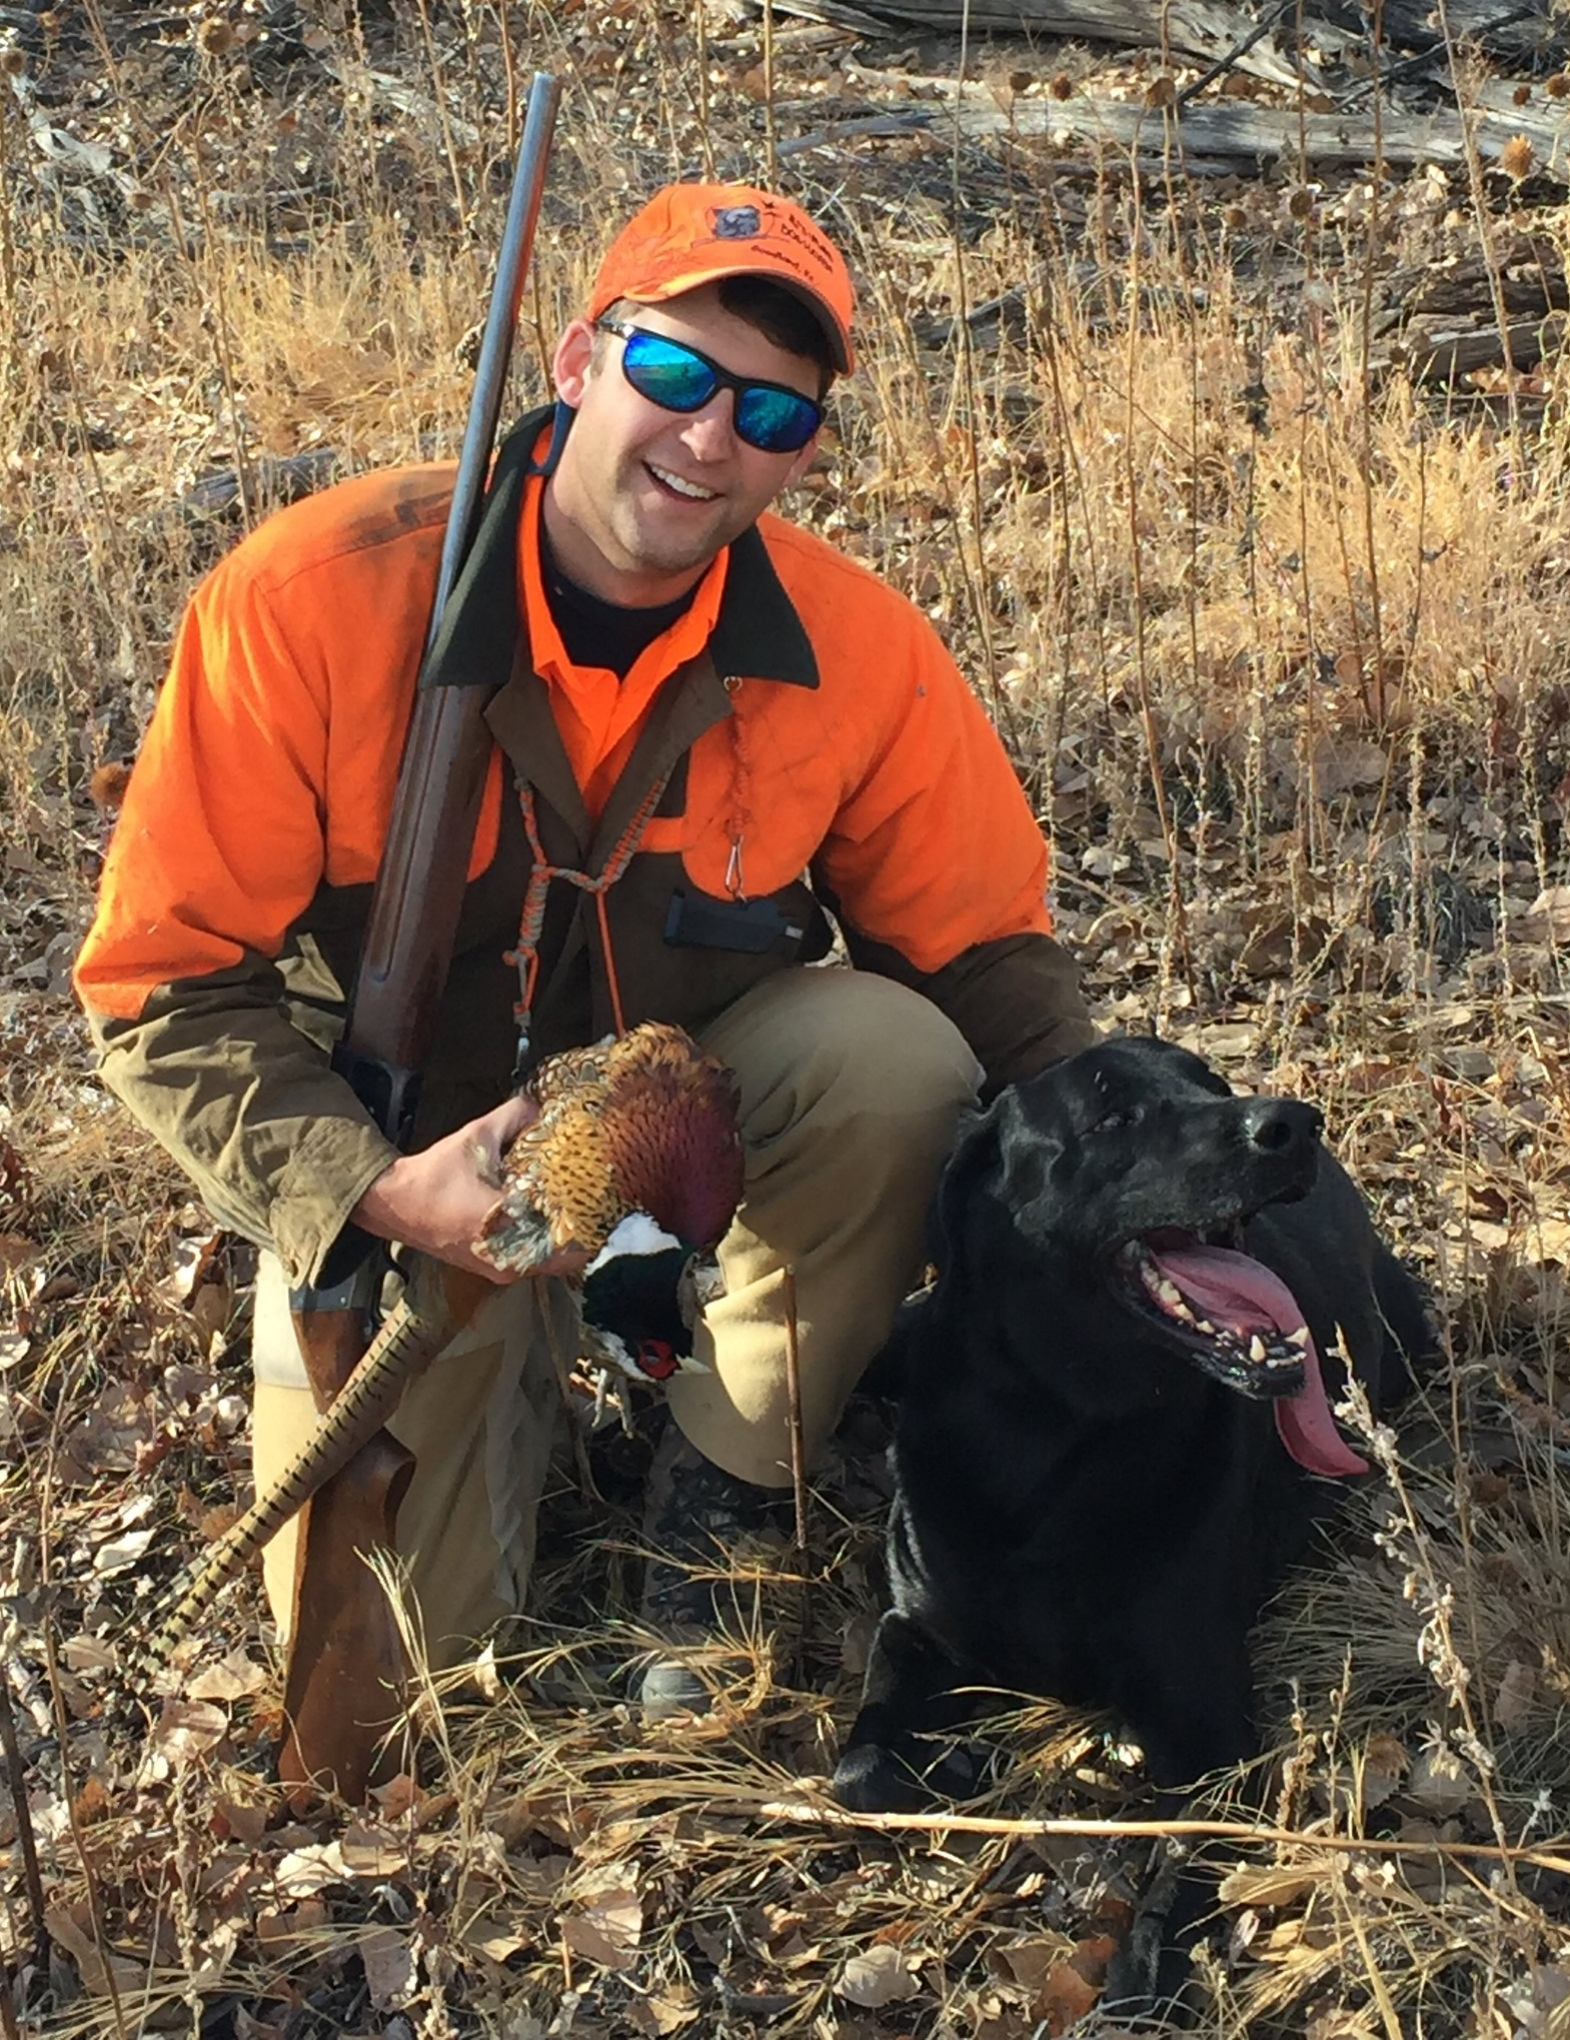 Colorado Hunting Violation Lawyer Nathaniel Gilbert is an avid outdoorsman, hunter, fisher, attorney and advocate for sportsmen and women. Nathaniel has defended and consulted with hunters, guides, and outfitters on issues central to the outdoors as well as individual criminal charges and business matters. If you or your business are facing charges, consult with fellow outdoorsman Nathaniel Gilbert to help evaluate your case and present your best defense.